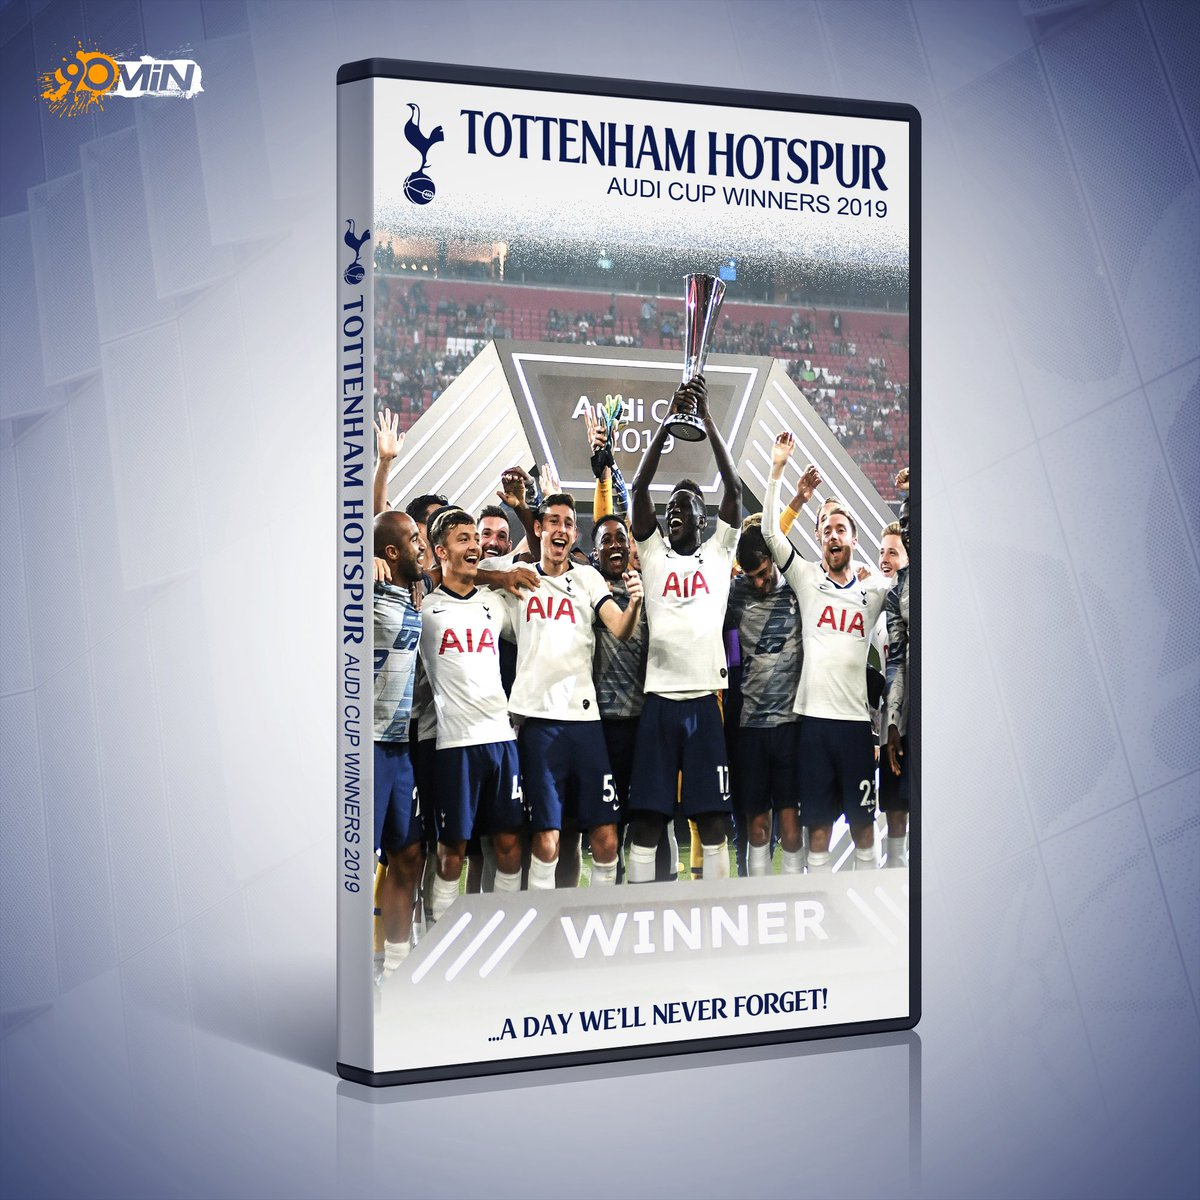 90min On Twitter Reviewers Are Saying Really And You Must Be Kidding Get The Tottenham Audi Cup Winners Dvd For Your Loved Ones This Summer Https T Co Mccmbnls1e